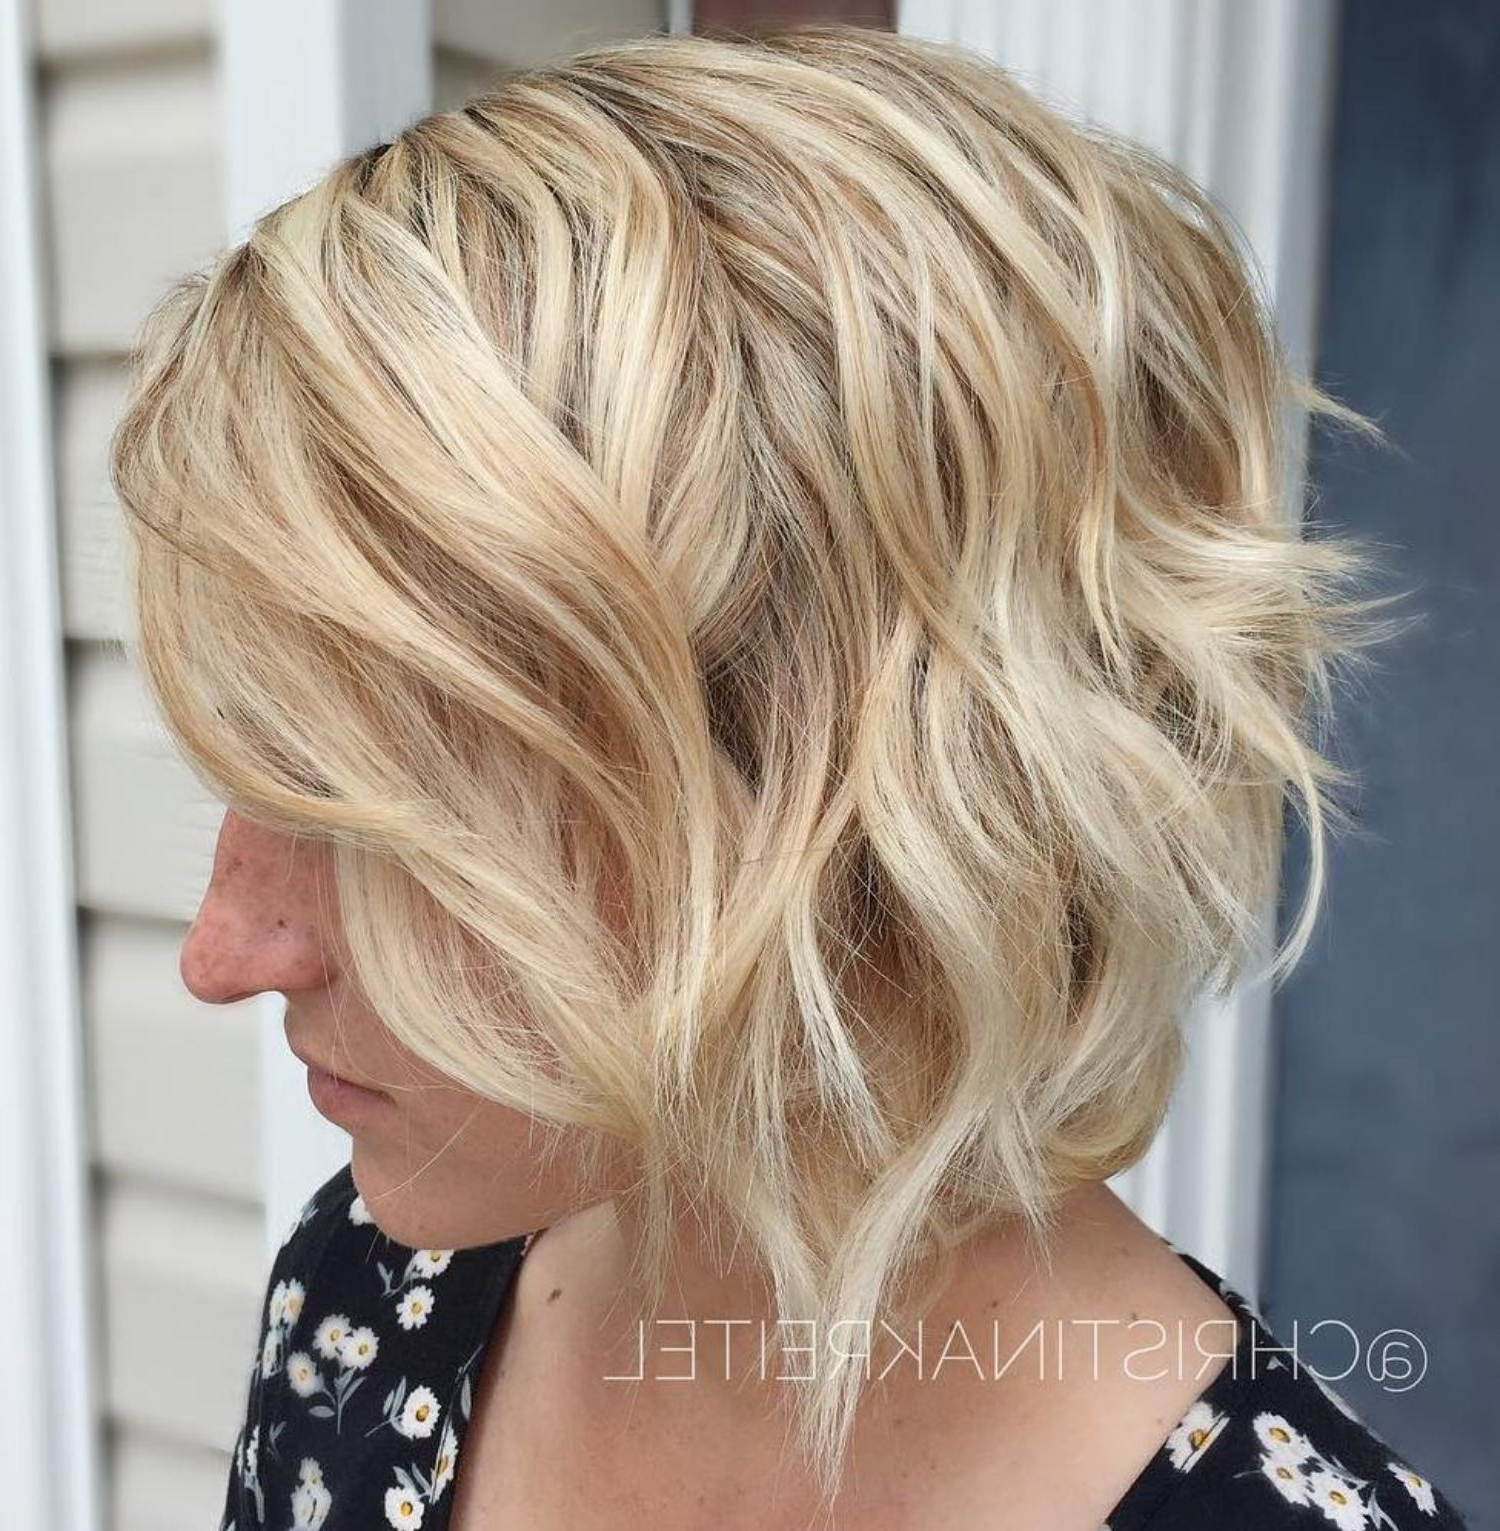 Popular Pretty Wavy Blonde Shag Haircuts Throughout 60 Short Shag Hairstyles That You Simply Can't Miss (View 16 of 20)